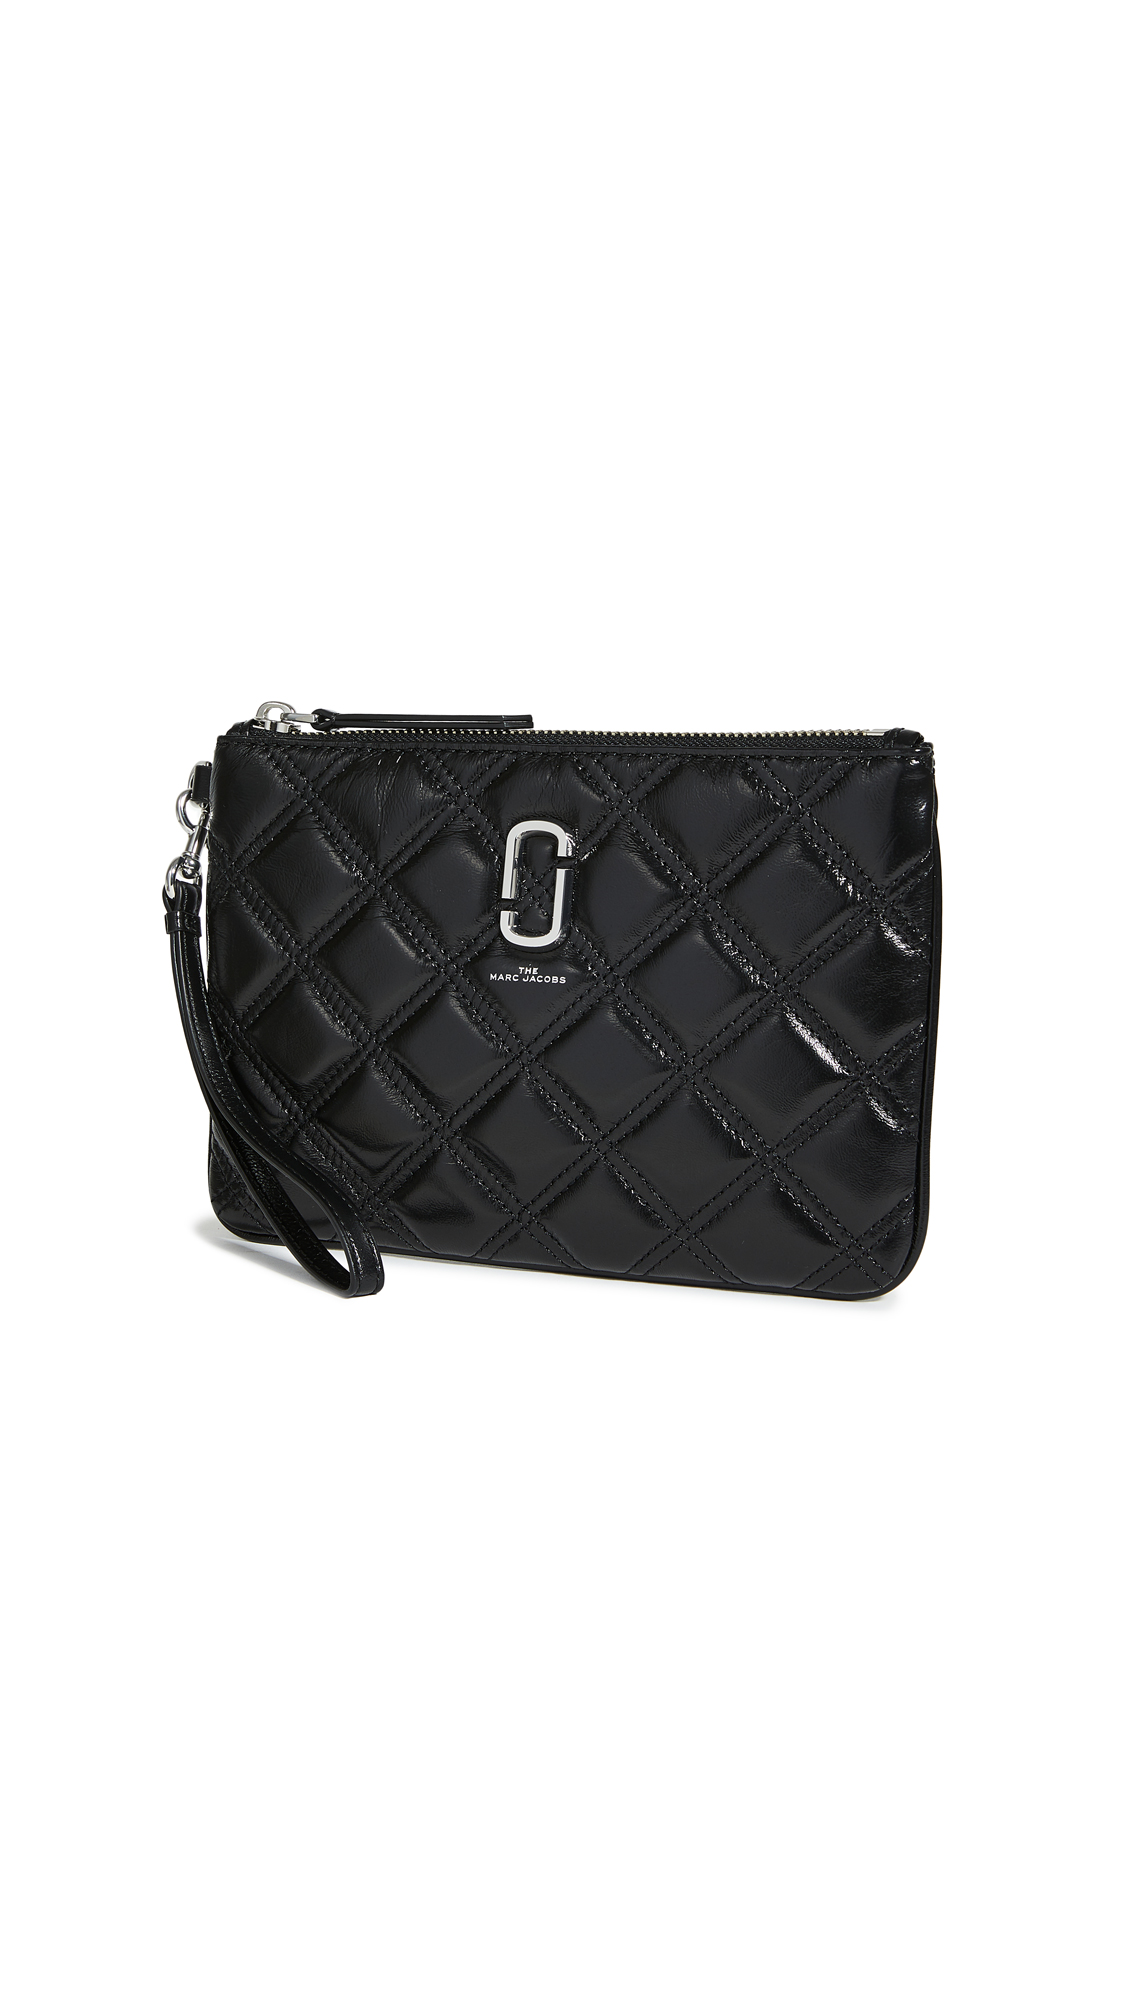 The Marc Jacobs Quilted Wristlet